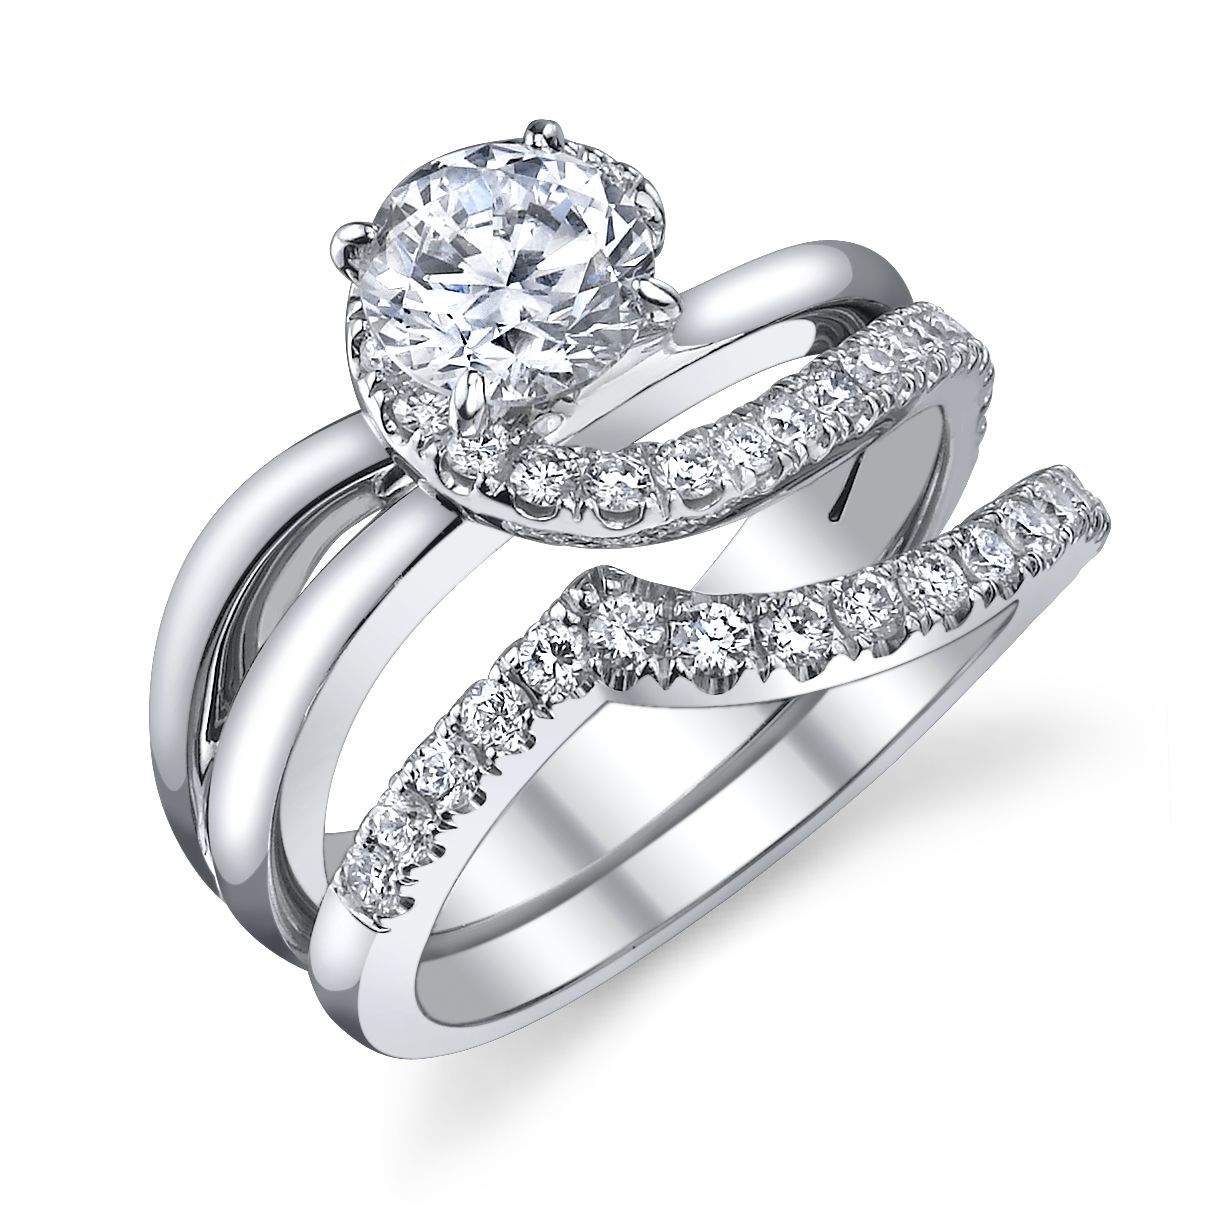 18k white gold and diamond wedding set. Call or email for